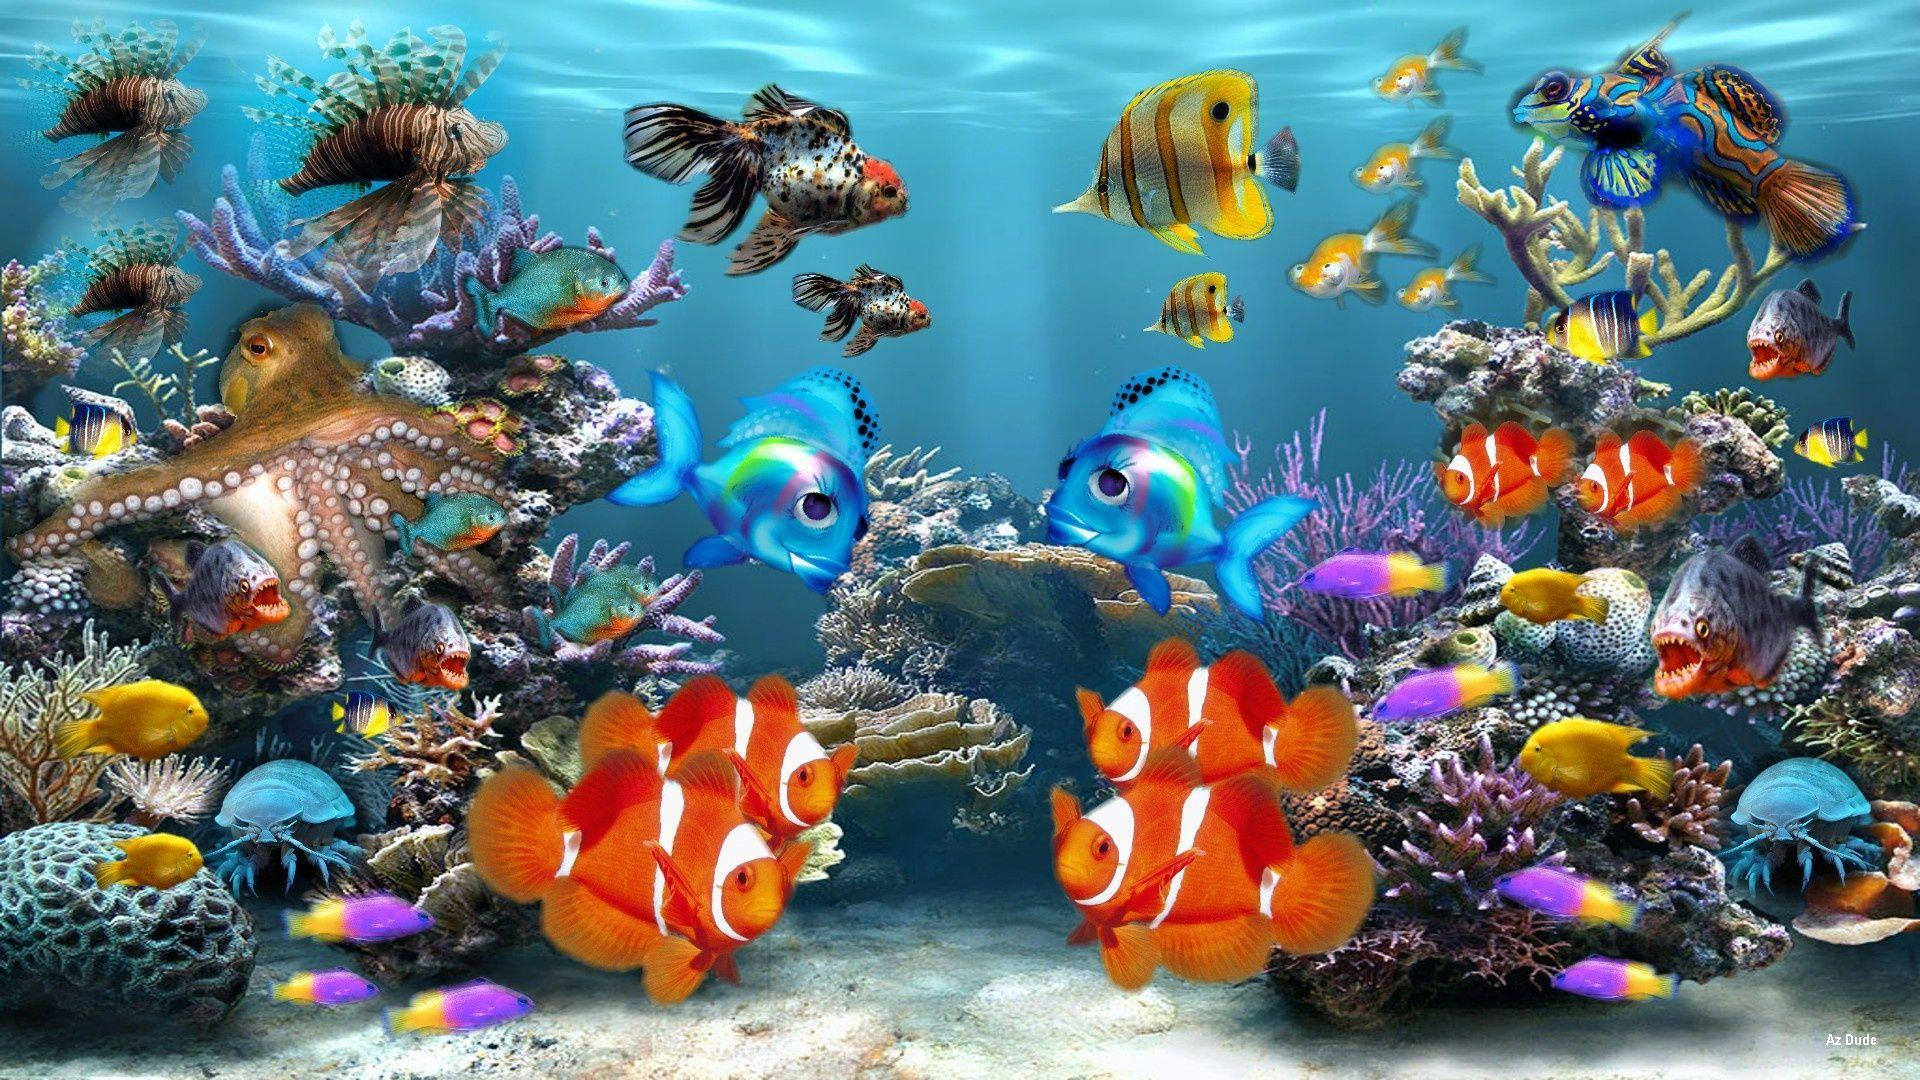 Live aquarium wallpapers Group